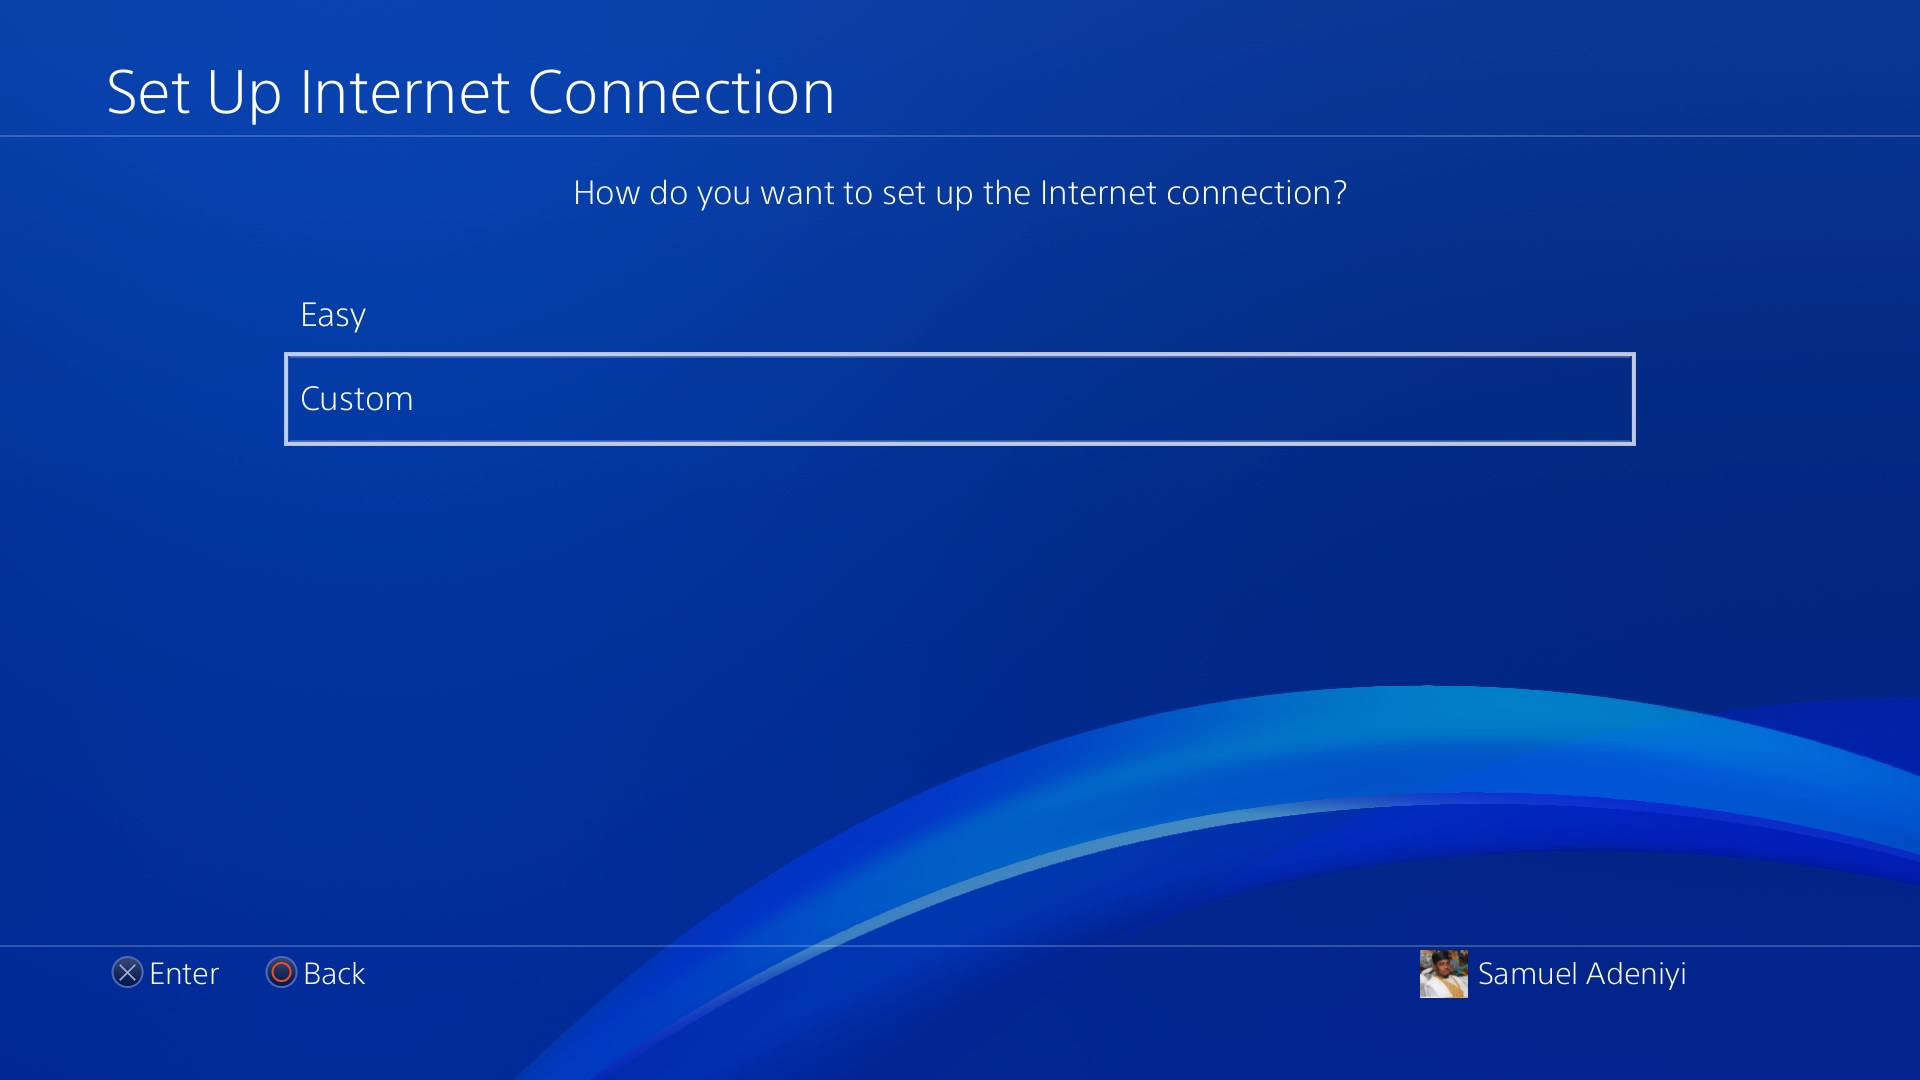 Select custom under internet connection settings